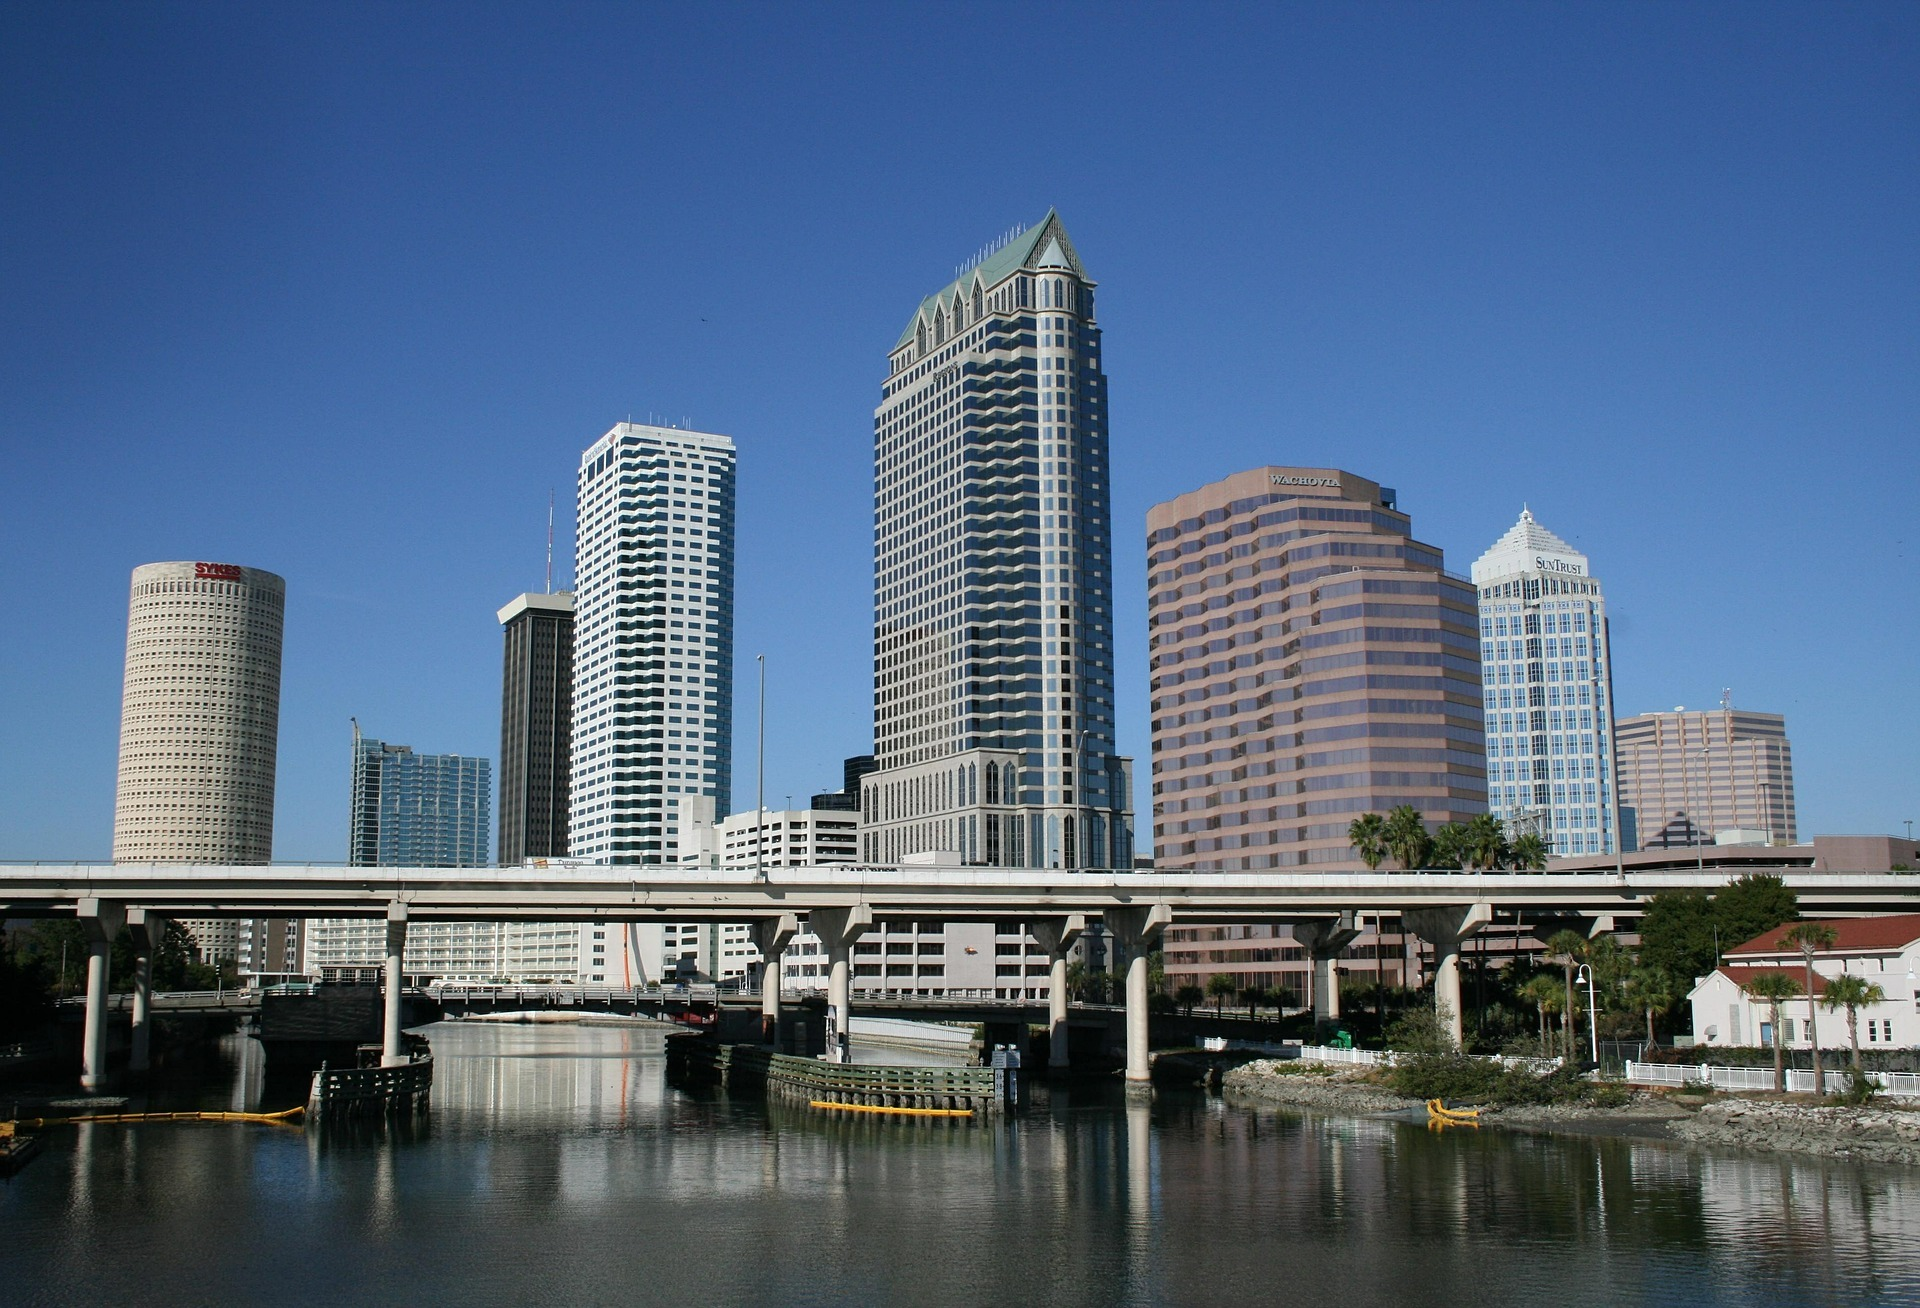 Restaurants And Recreation Along The Tampa Riverwalk